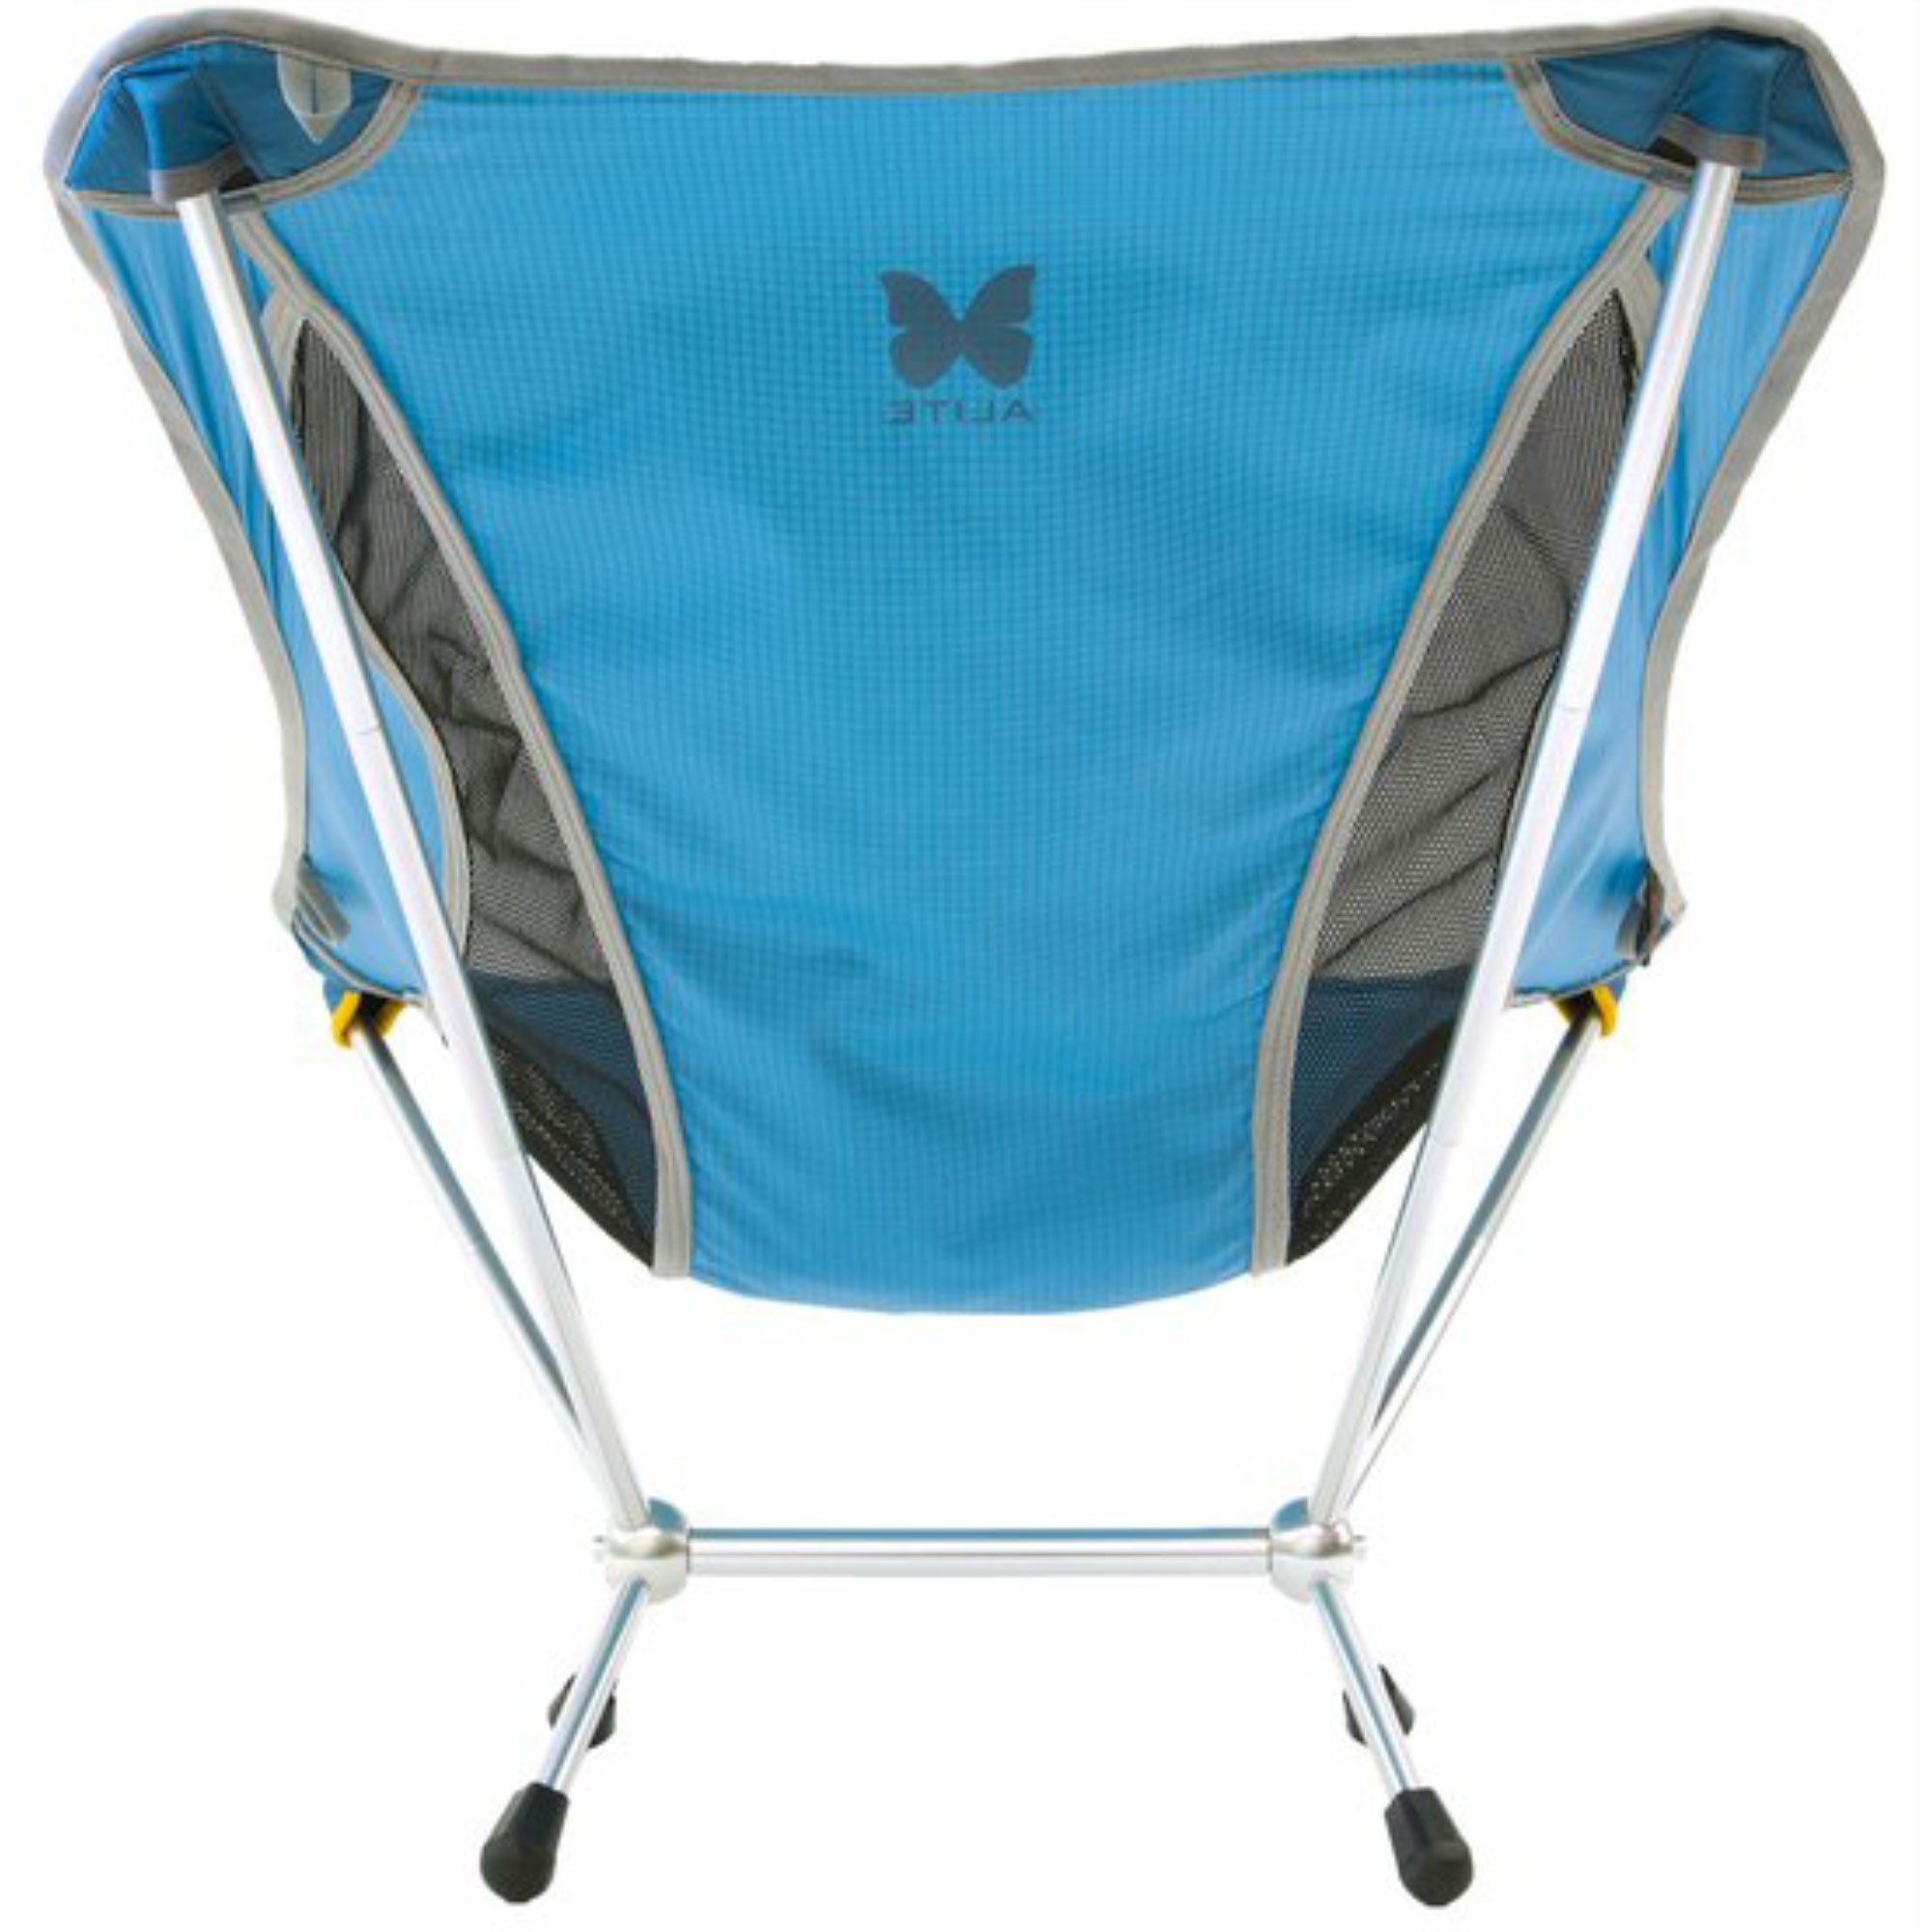 Alite-Designs-Mantis-Camping-Chair-Back-Capitola-Blue.jpg